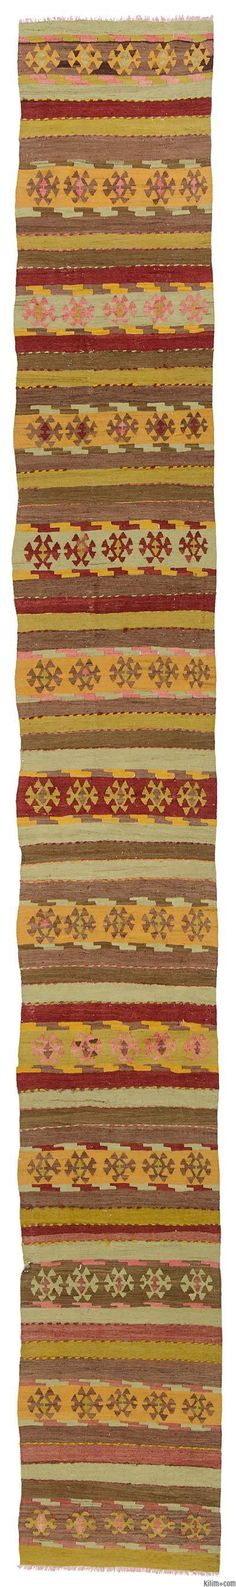 A long, vintage kilim runner rug around 50 years old and in very good condition. This rug was hand-woven in the Sivas region of Central Anatolia, Turkey.